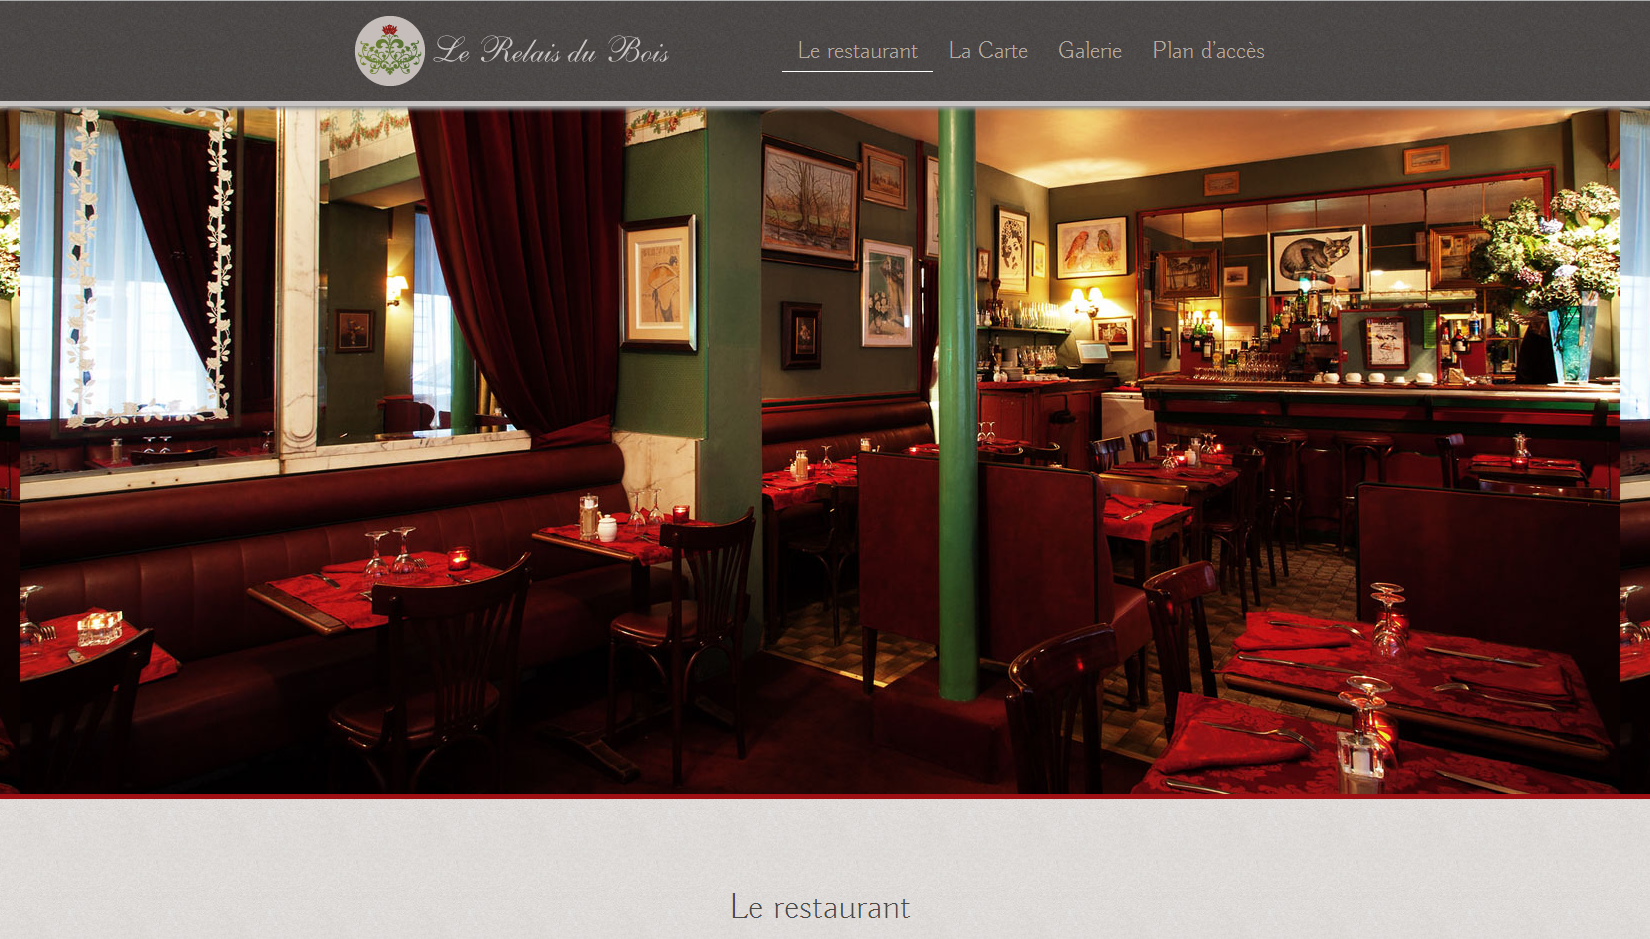 Identité et site web (conception/rédaction) - Identity and website (conception / writing) #webdesign #restaurant #paris #website